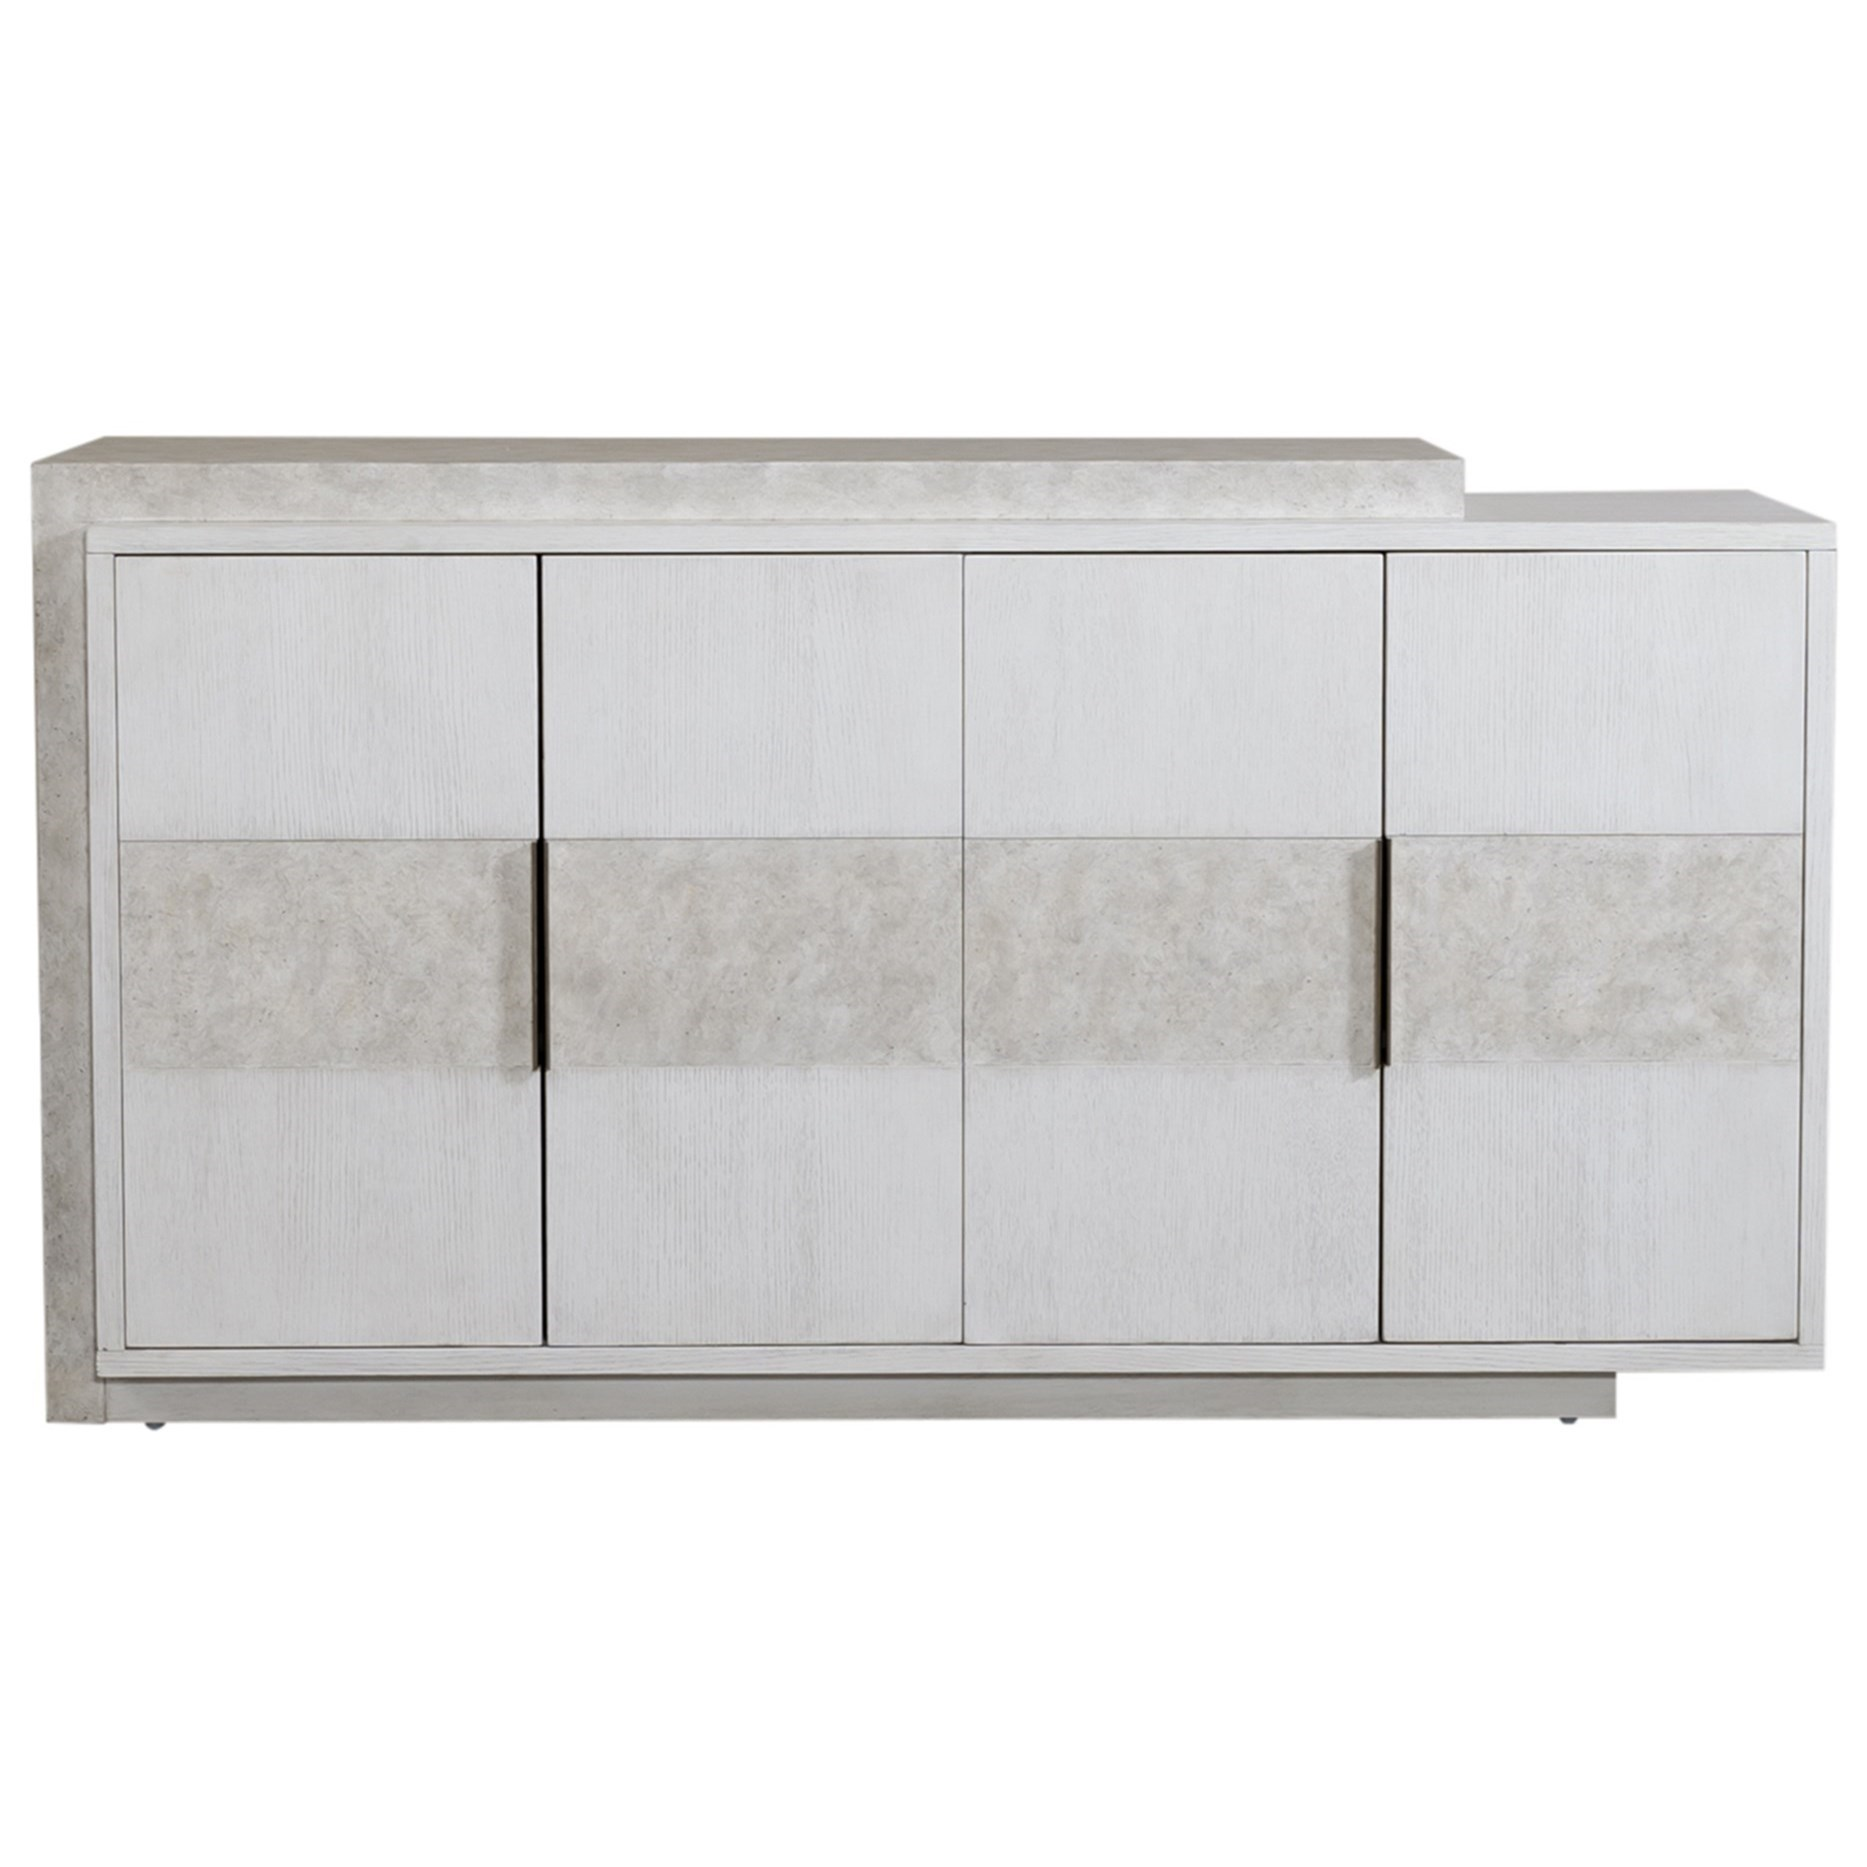 Mirage - 946 Buffet by Libby at Walker's Furniture